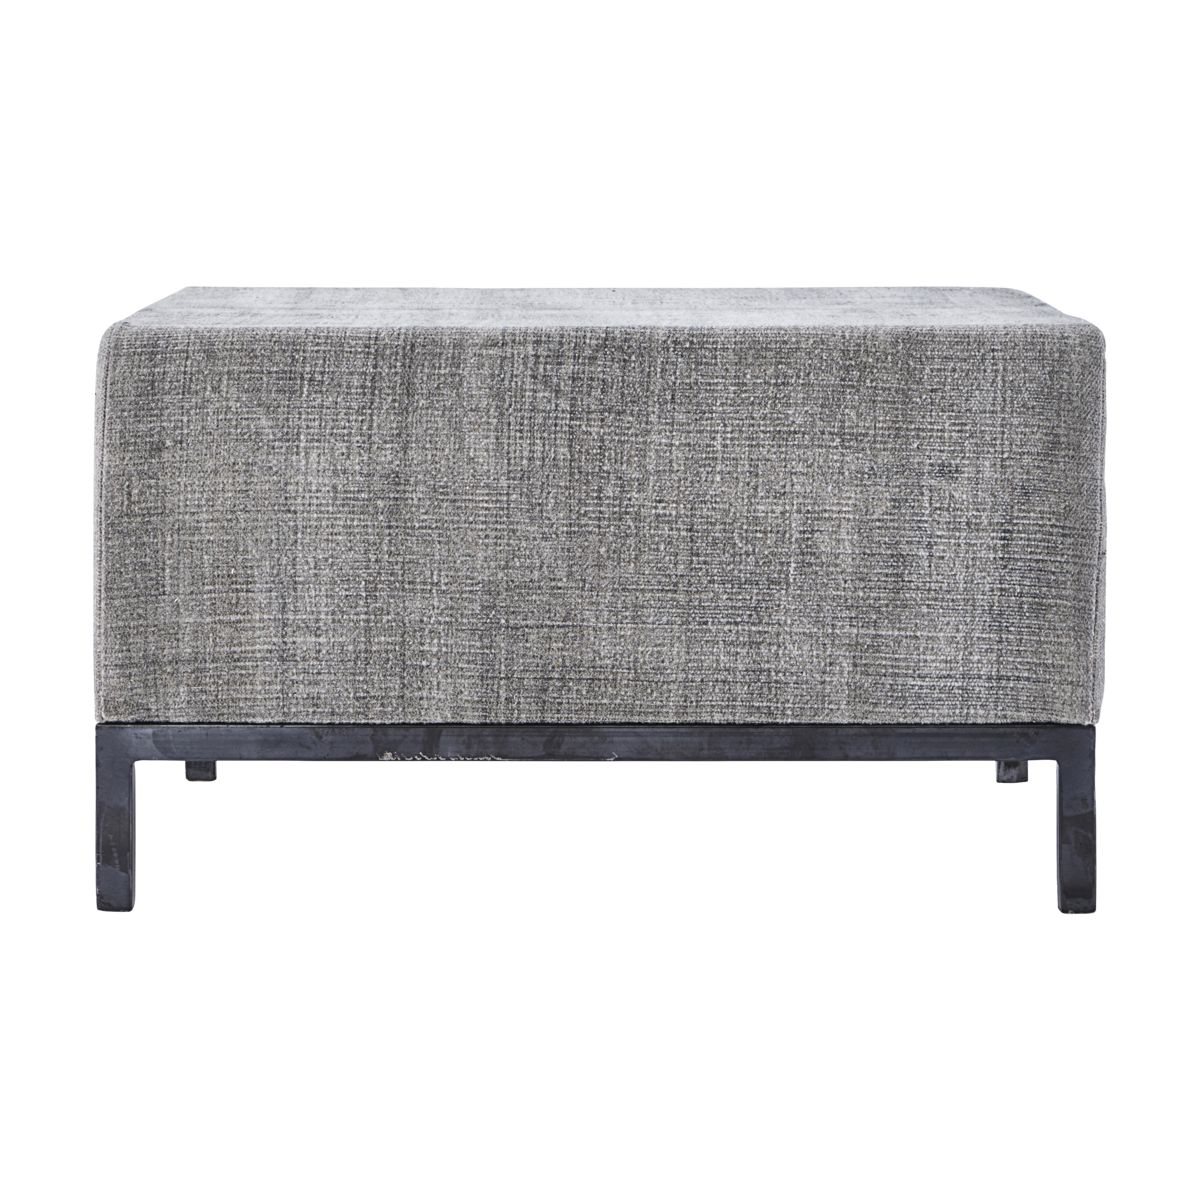 Soffmodul 80 cm POUFFE Greys, House Doctor